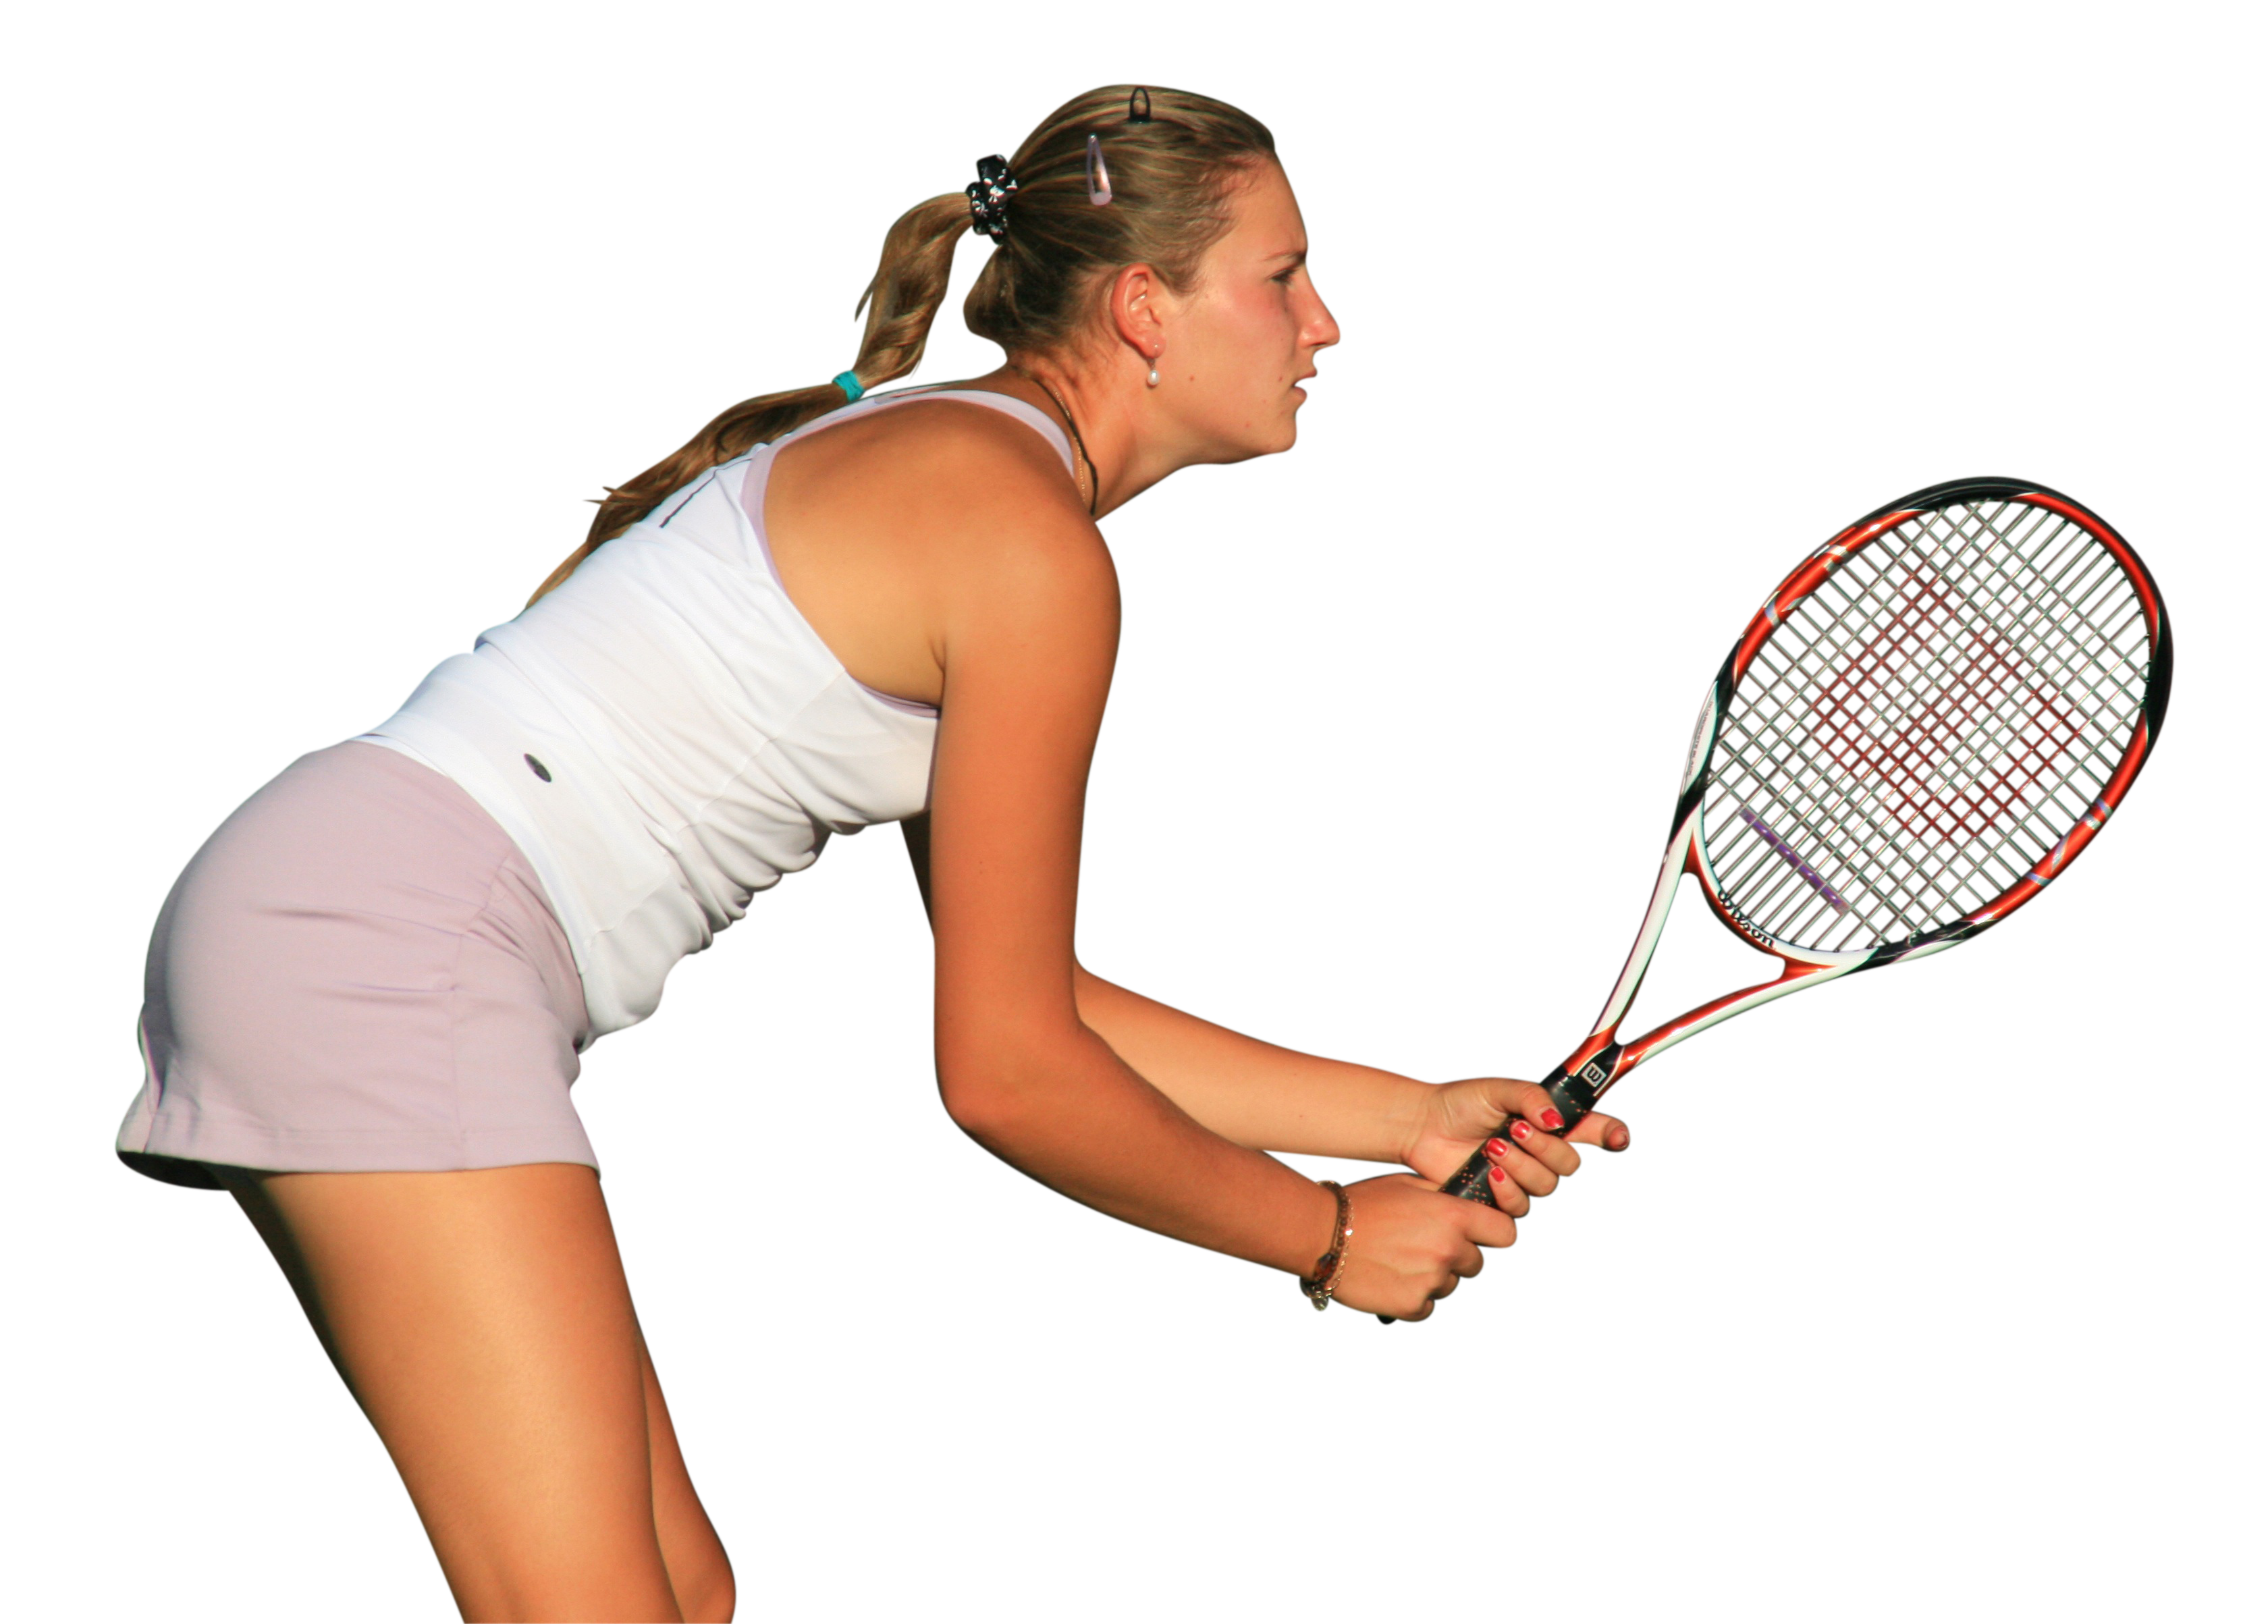 tennis-player-703785_Clip